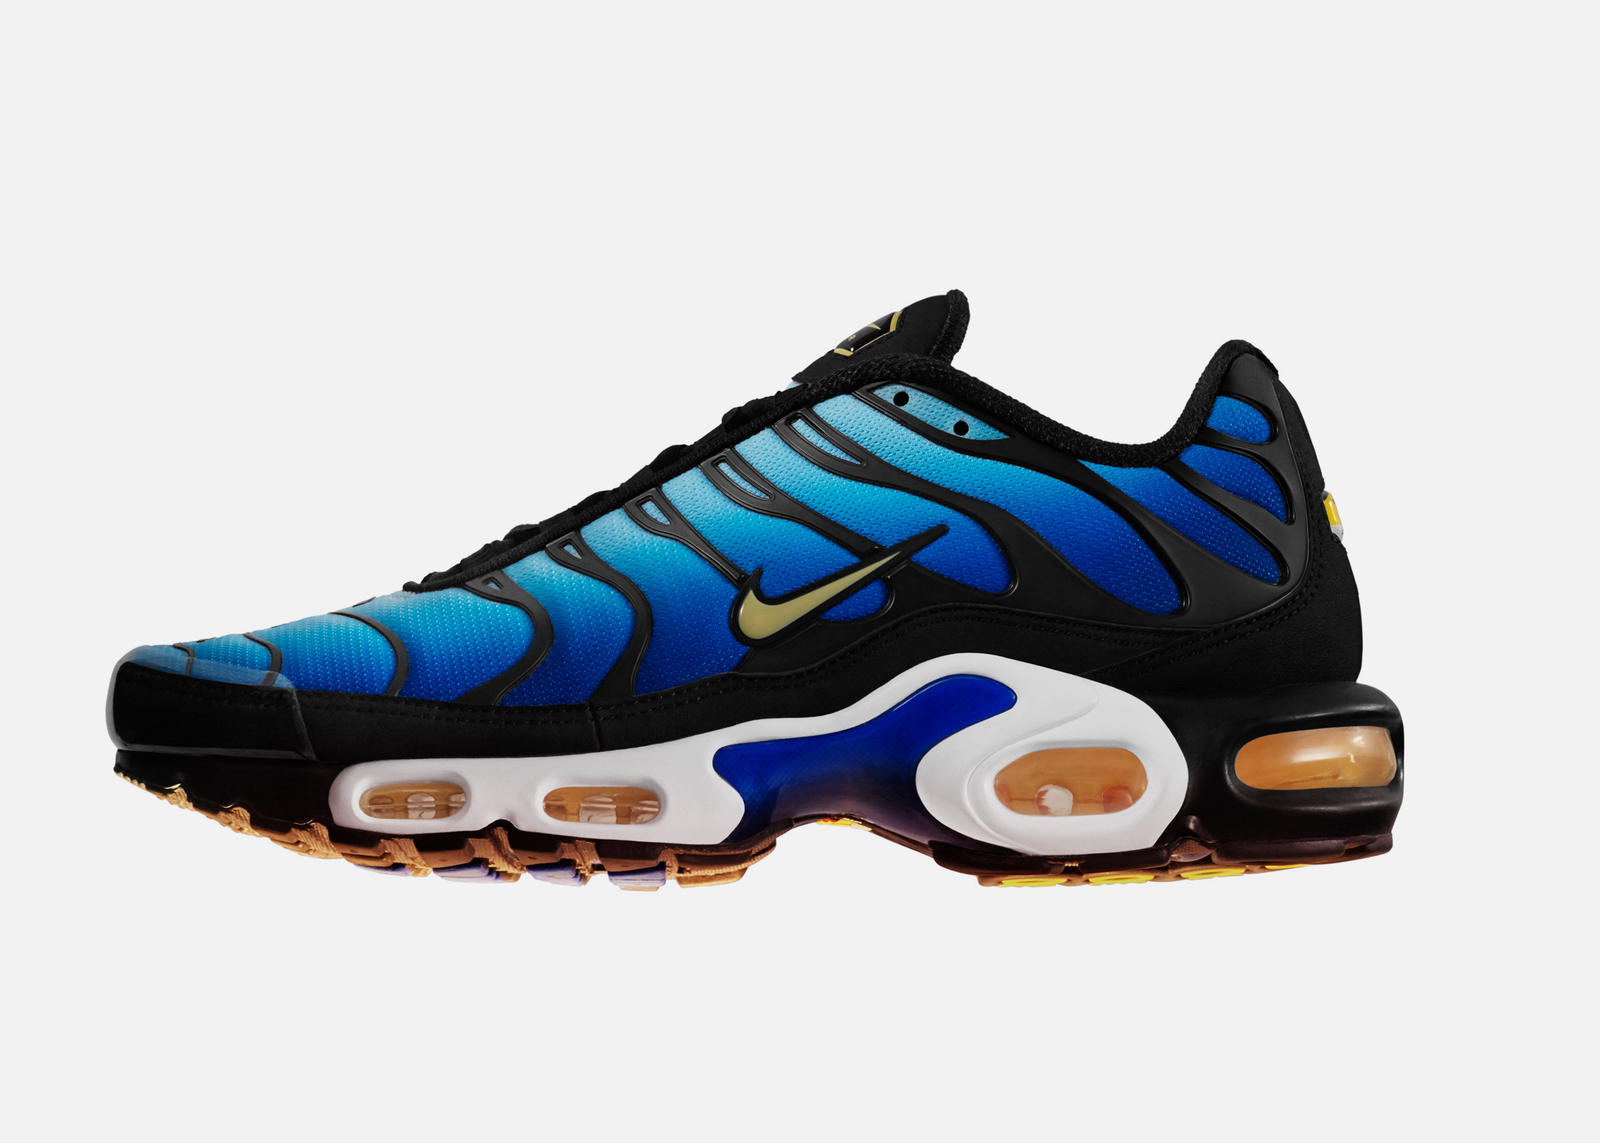 online retailer c9b50 313f2 The Untold Story of the Nike Air Max Plus 20